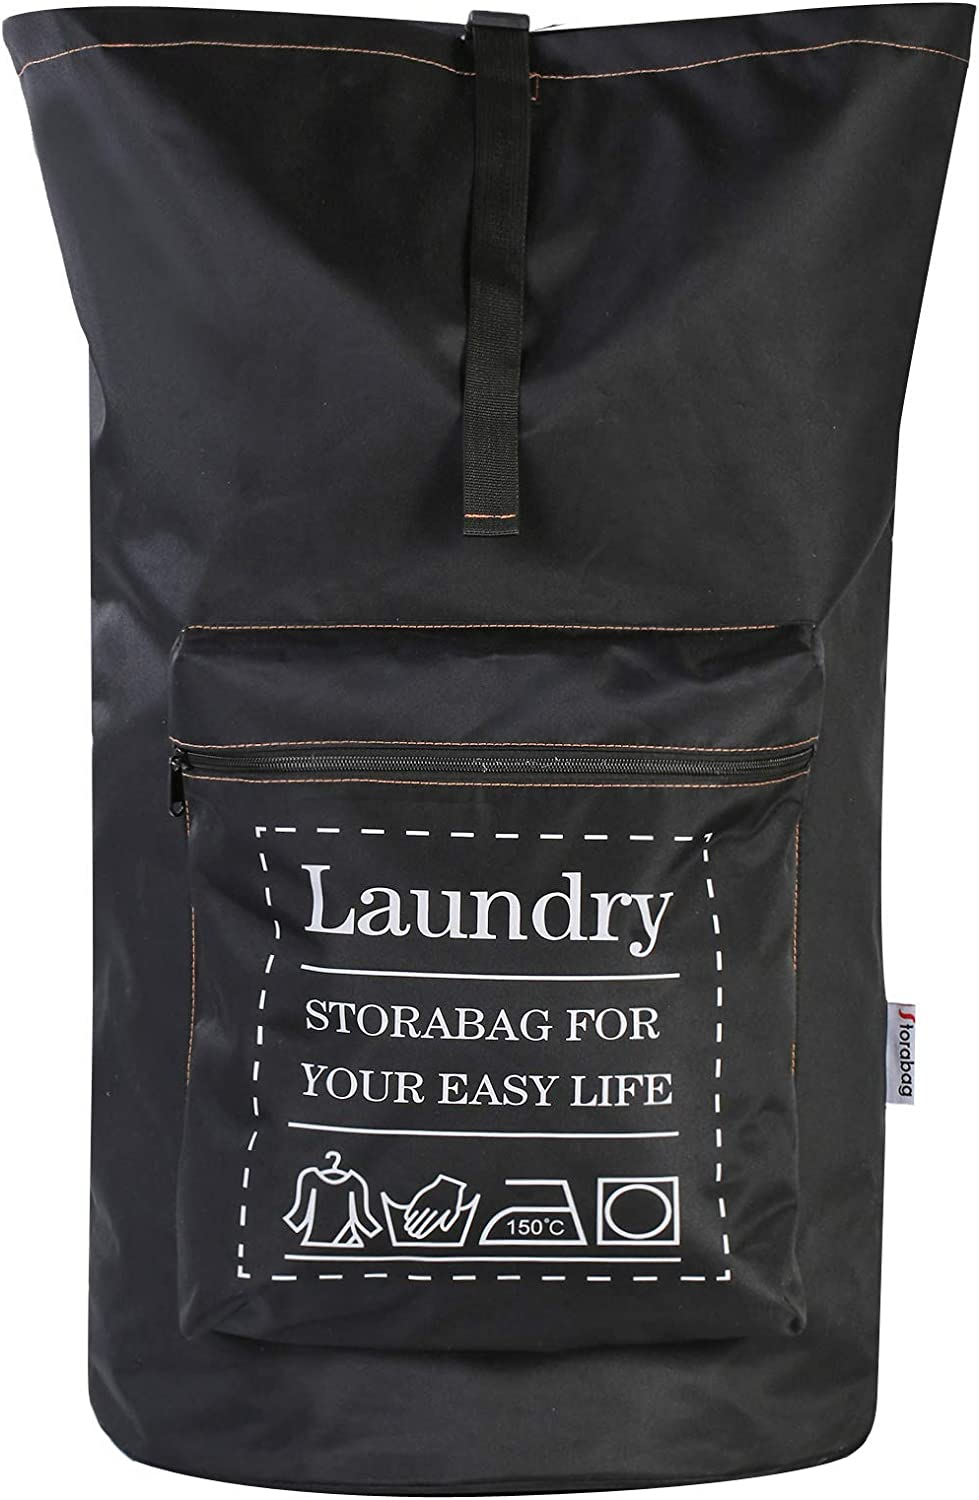 Extra Large Backpack Laundry Bag with Adjustable String (Black)